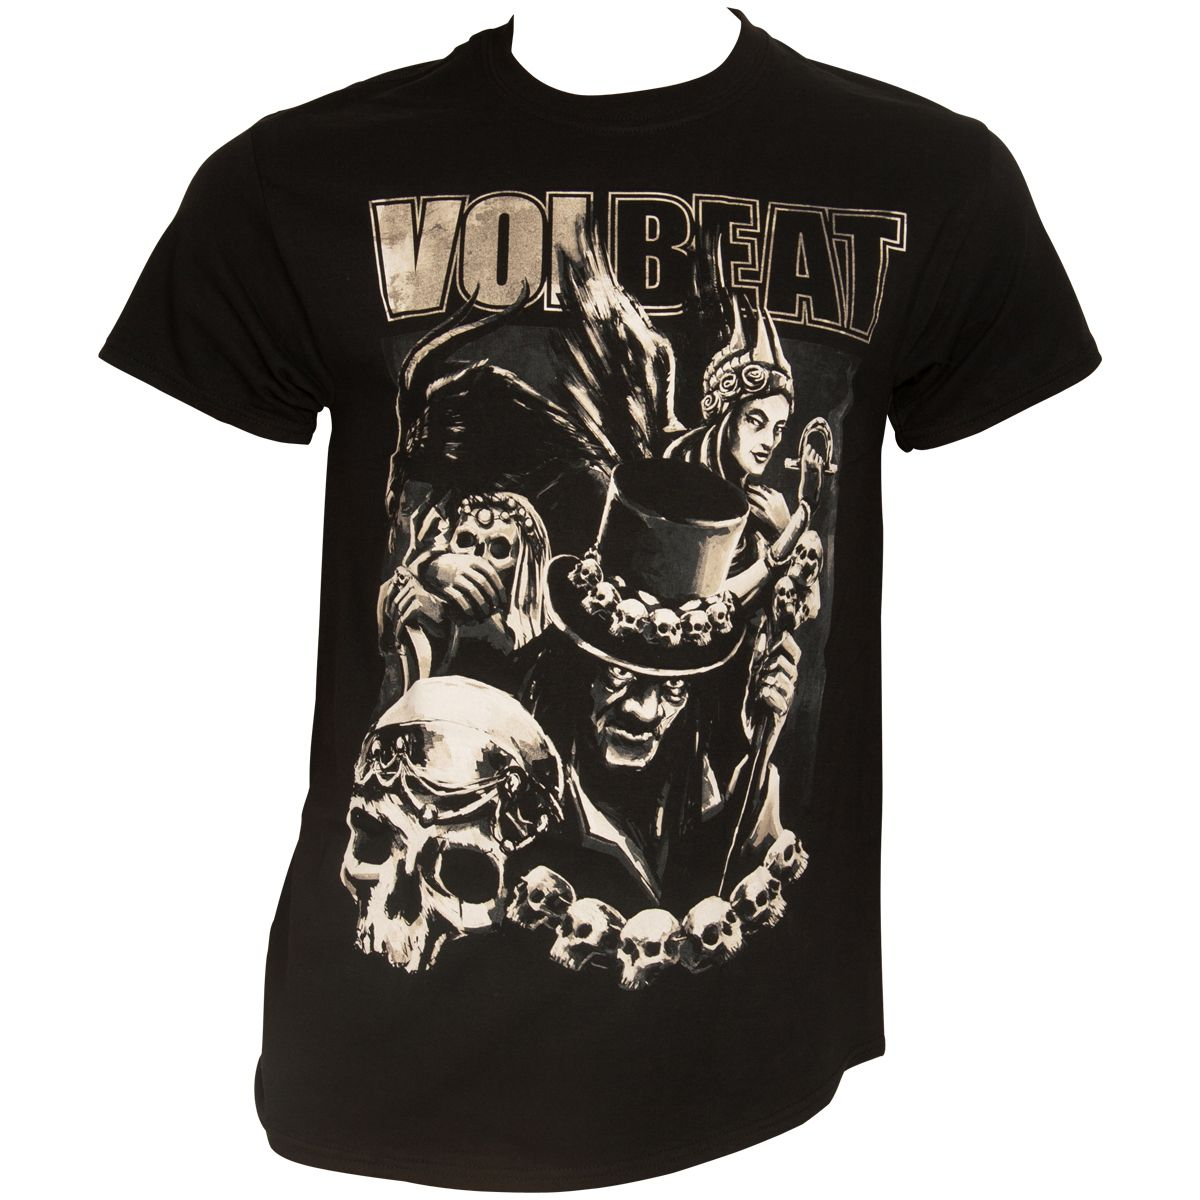 Volbeat T-Shirt Black Collage Schwarz